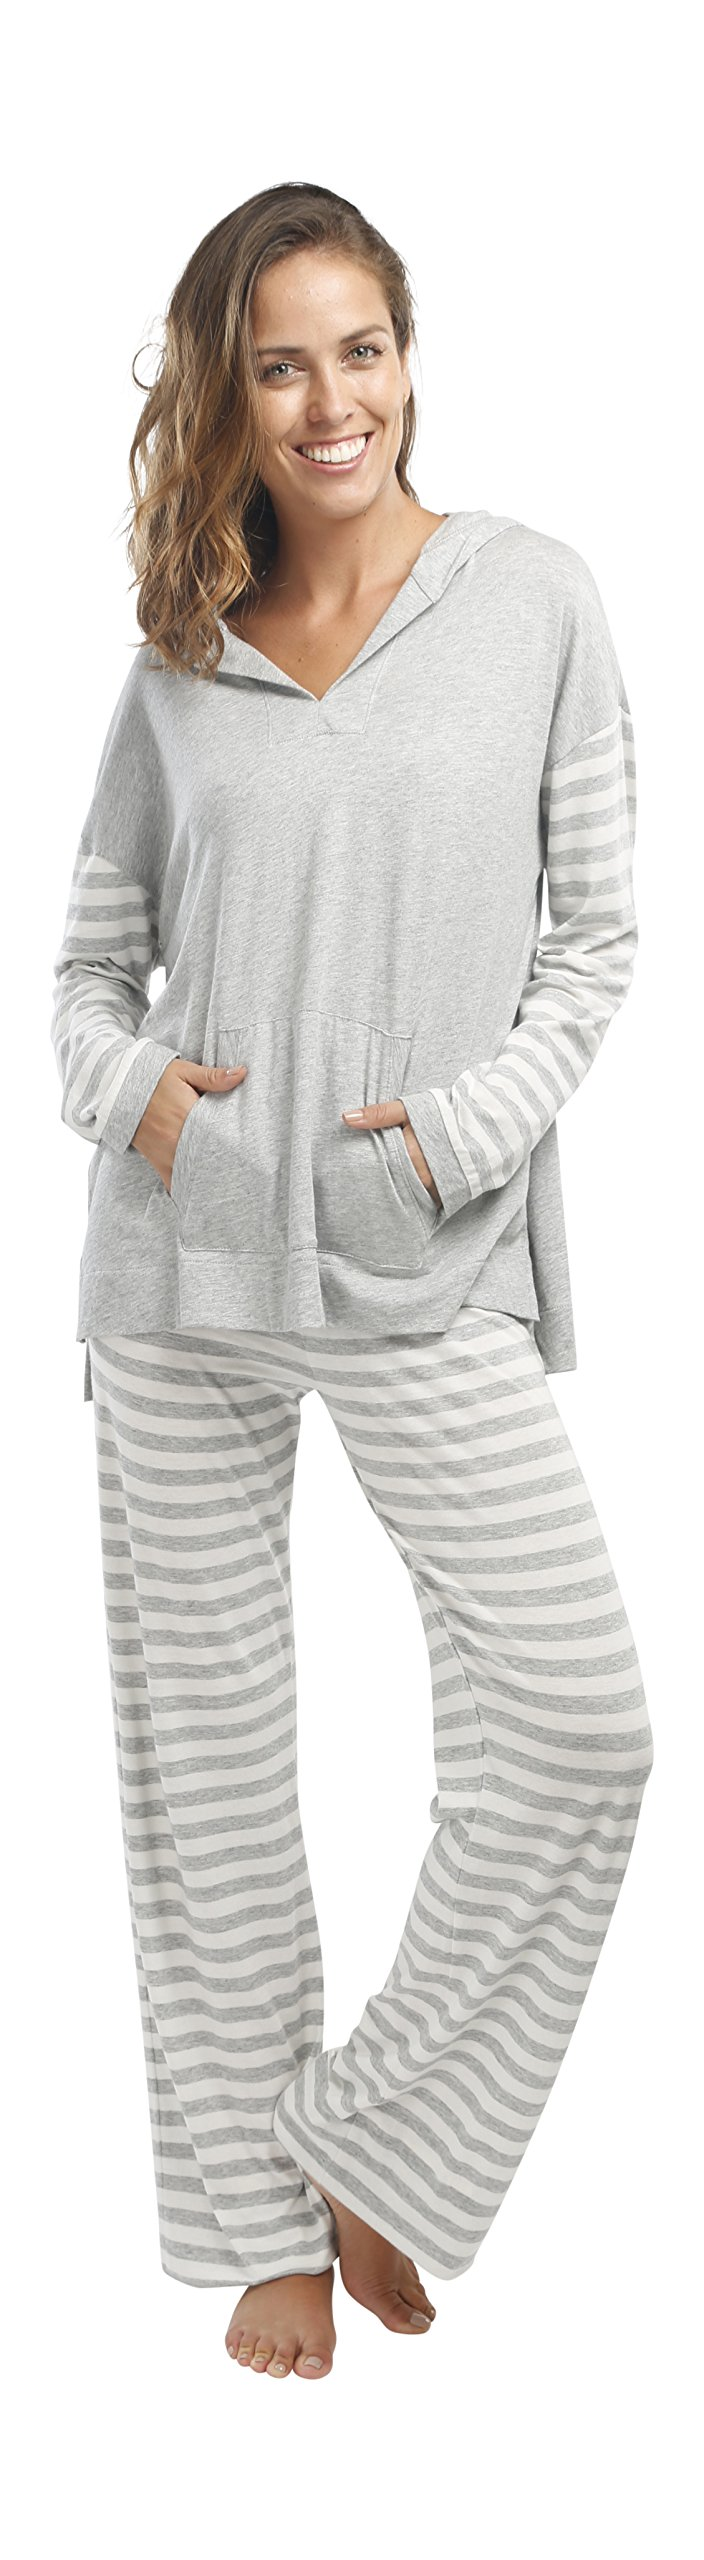 jijamas Incredibly Soft Pima Cotton Women's Pajama Set ''The Hoodie Set'' In Heather Grey